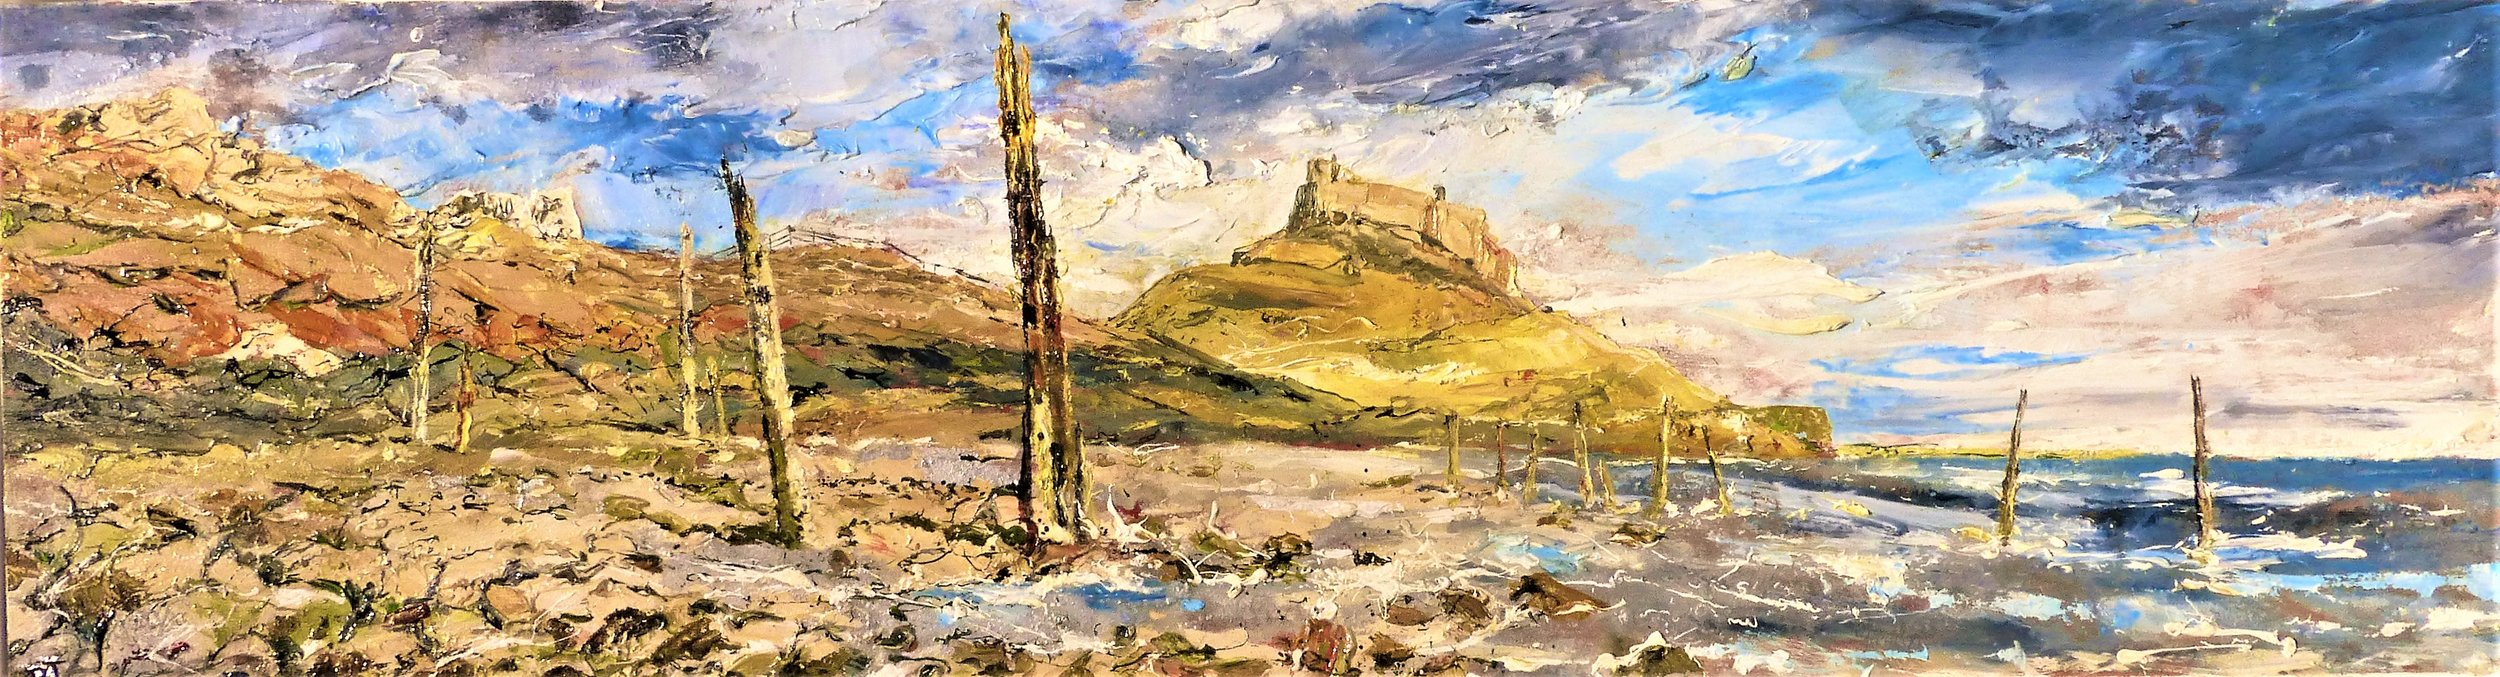 Lindisfarne Castle, Northumbria